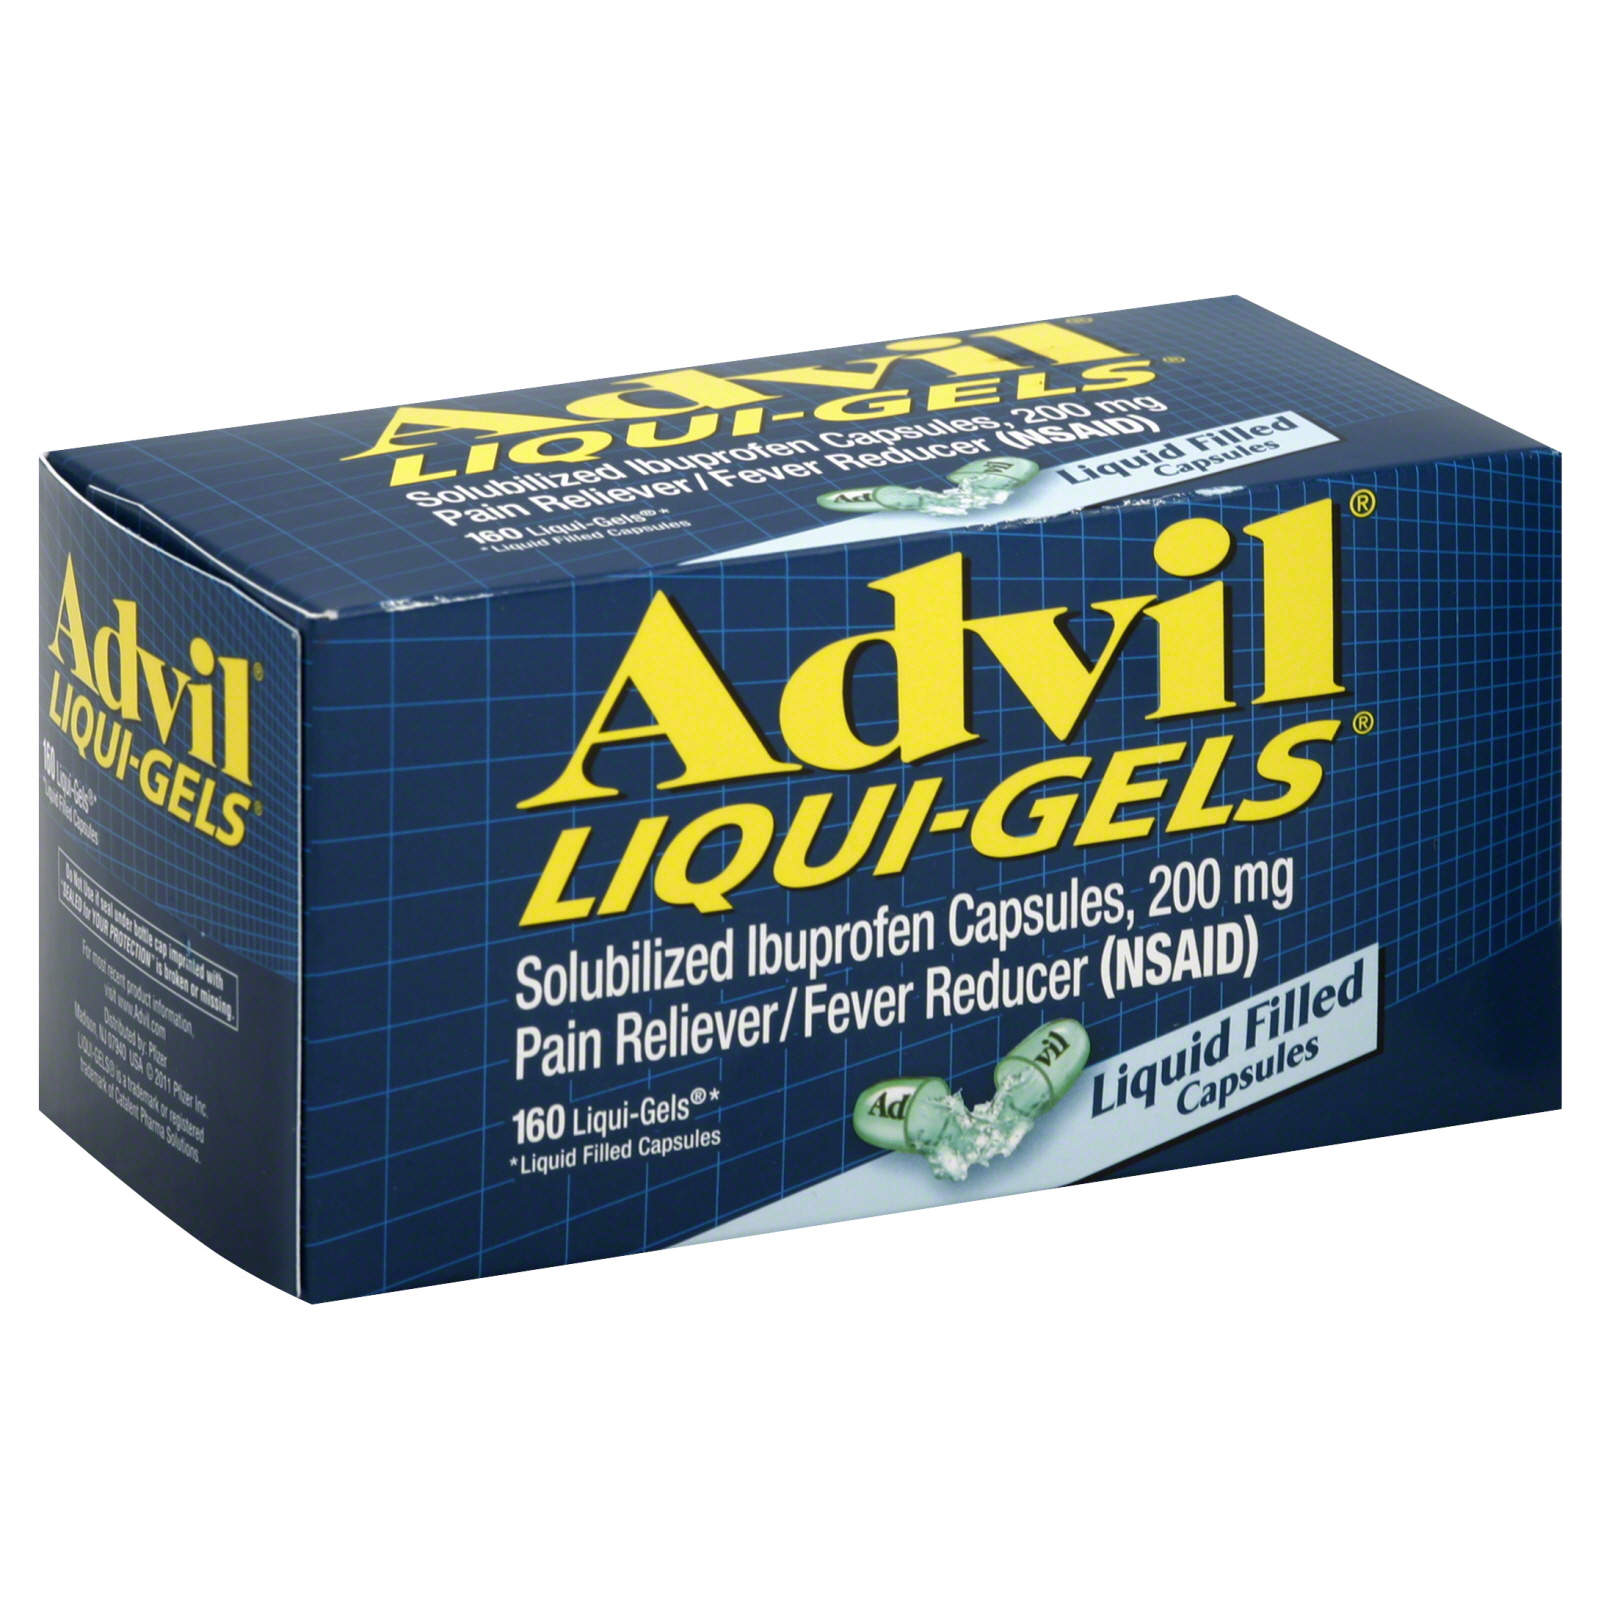 Liqui-Gels Pain Reliever/Fever Reducer, 200 mg, Liquid Filled Capsules, 160 liqui-gels                                           at mygofer.com